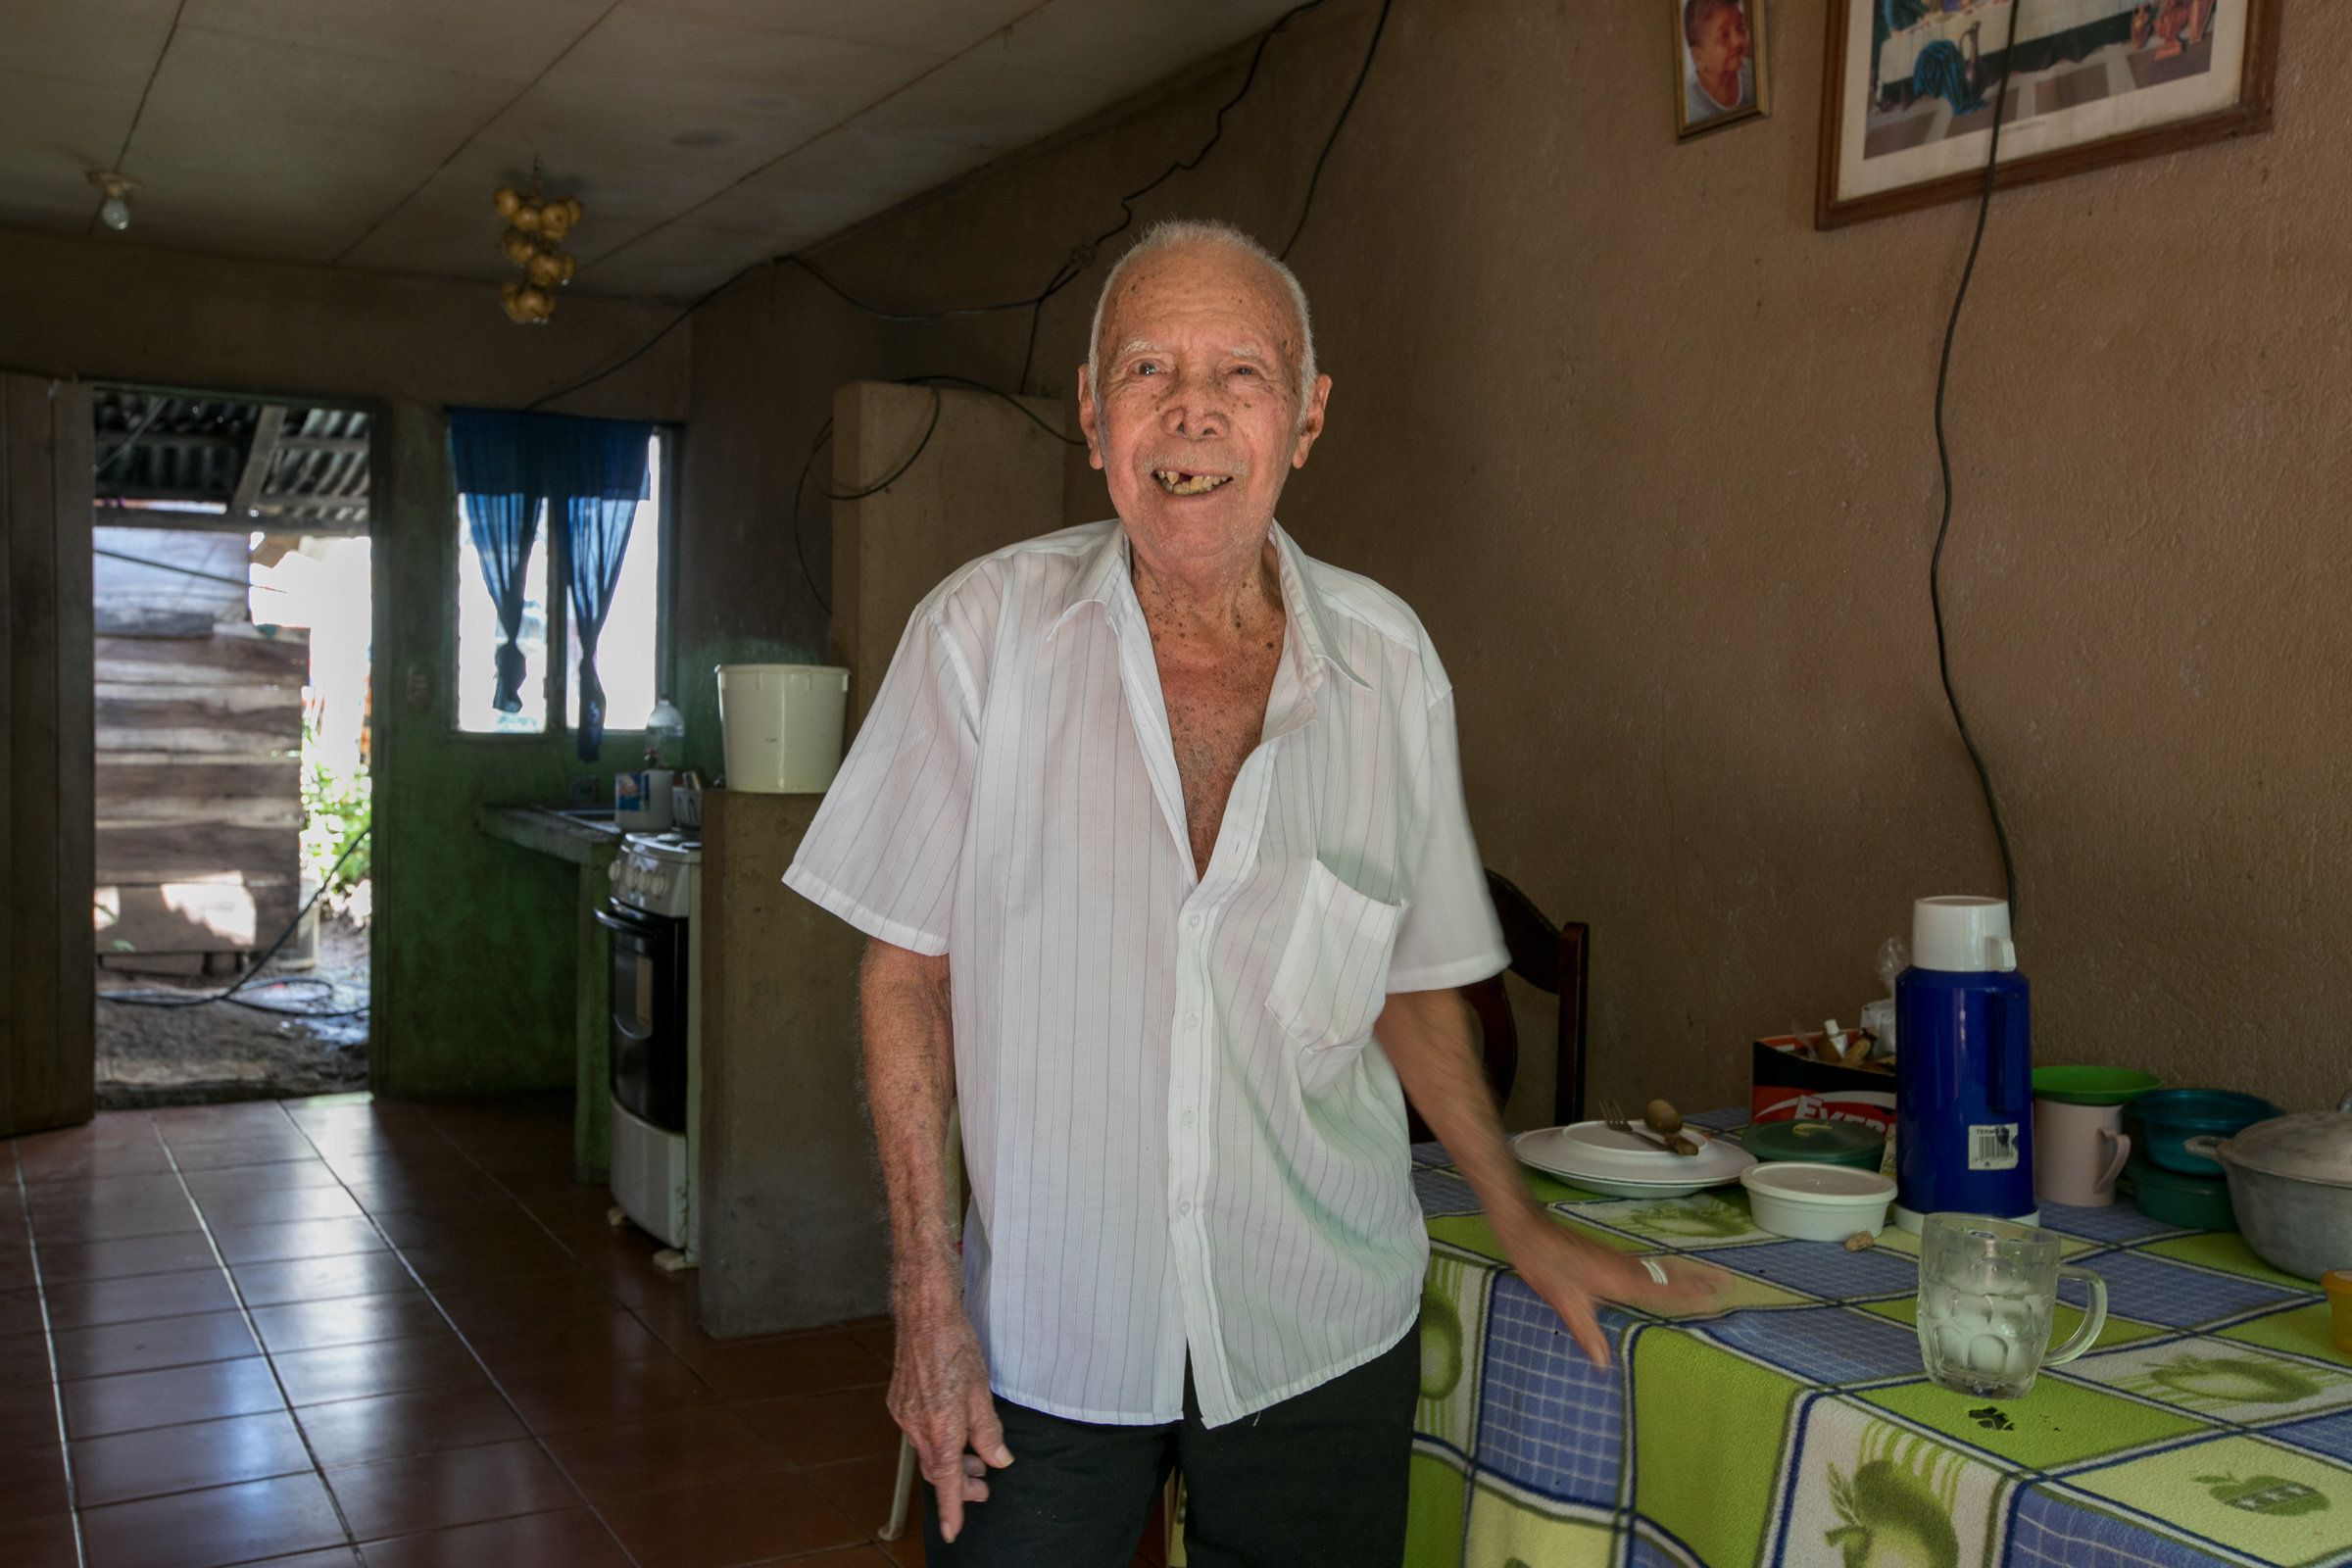 Francisco Gomez, turned 100 years-old on April 2018. Photographed at his house in Nicoya, Guancaste, Costa Rica.